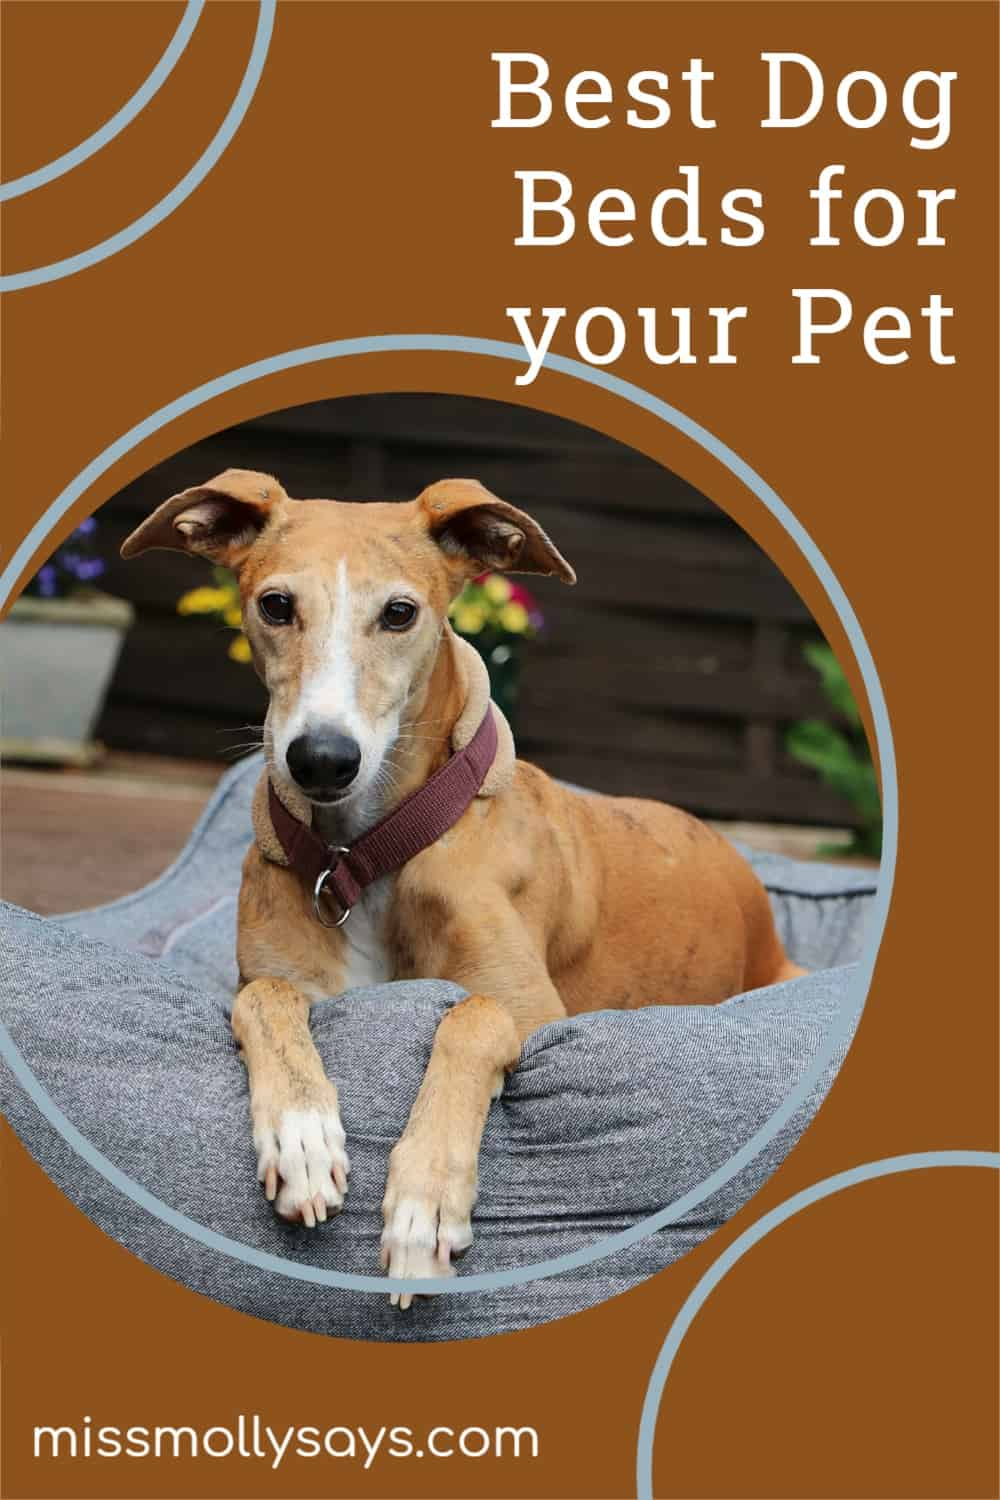 Best Dog Beds for your Pet